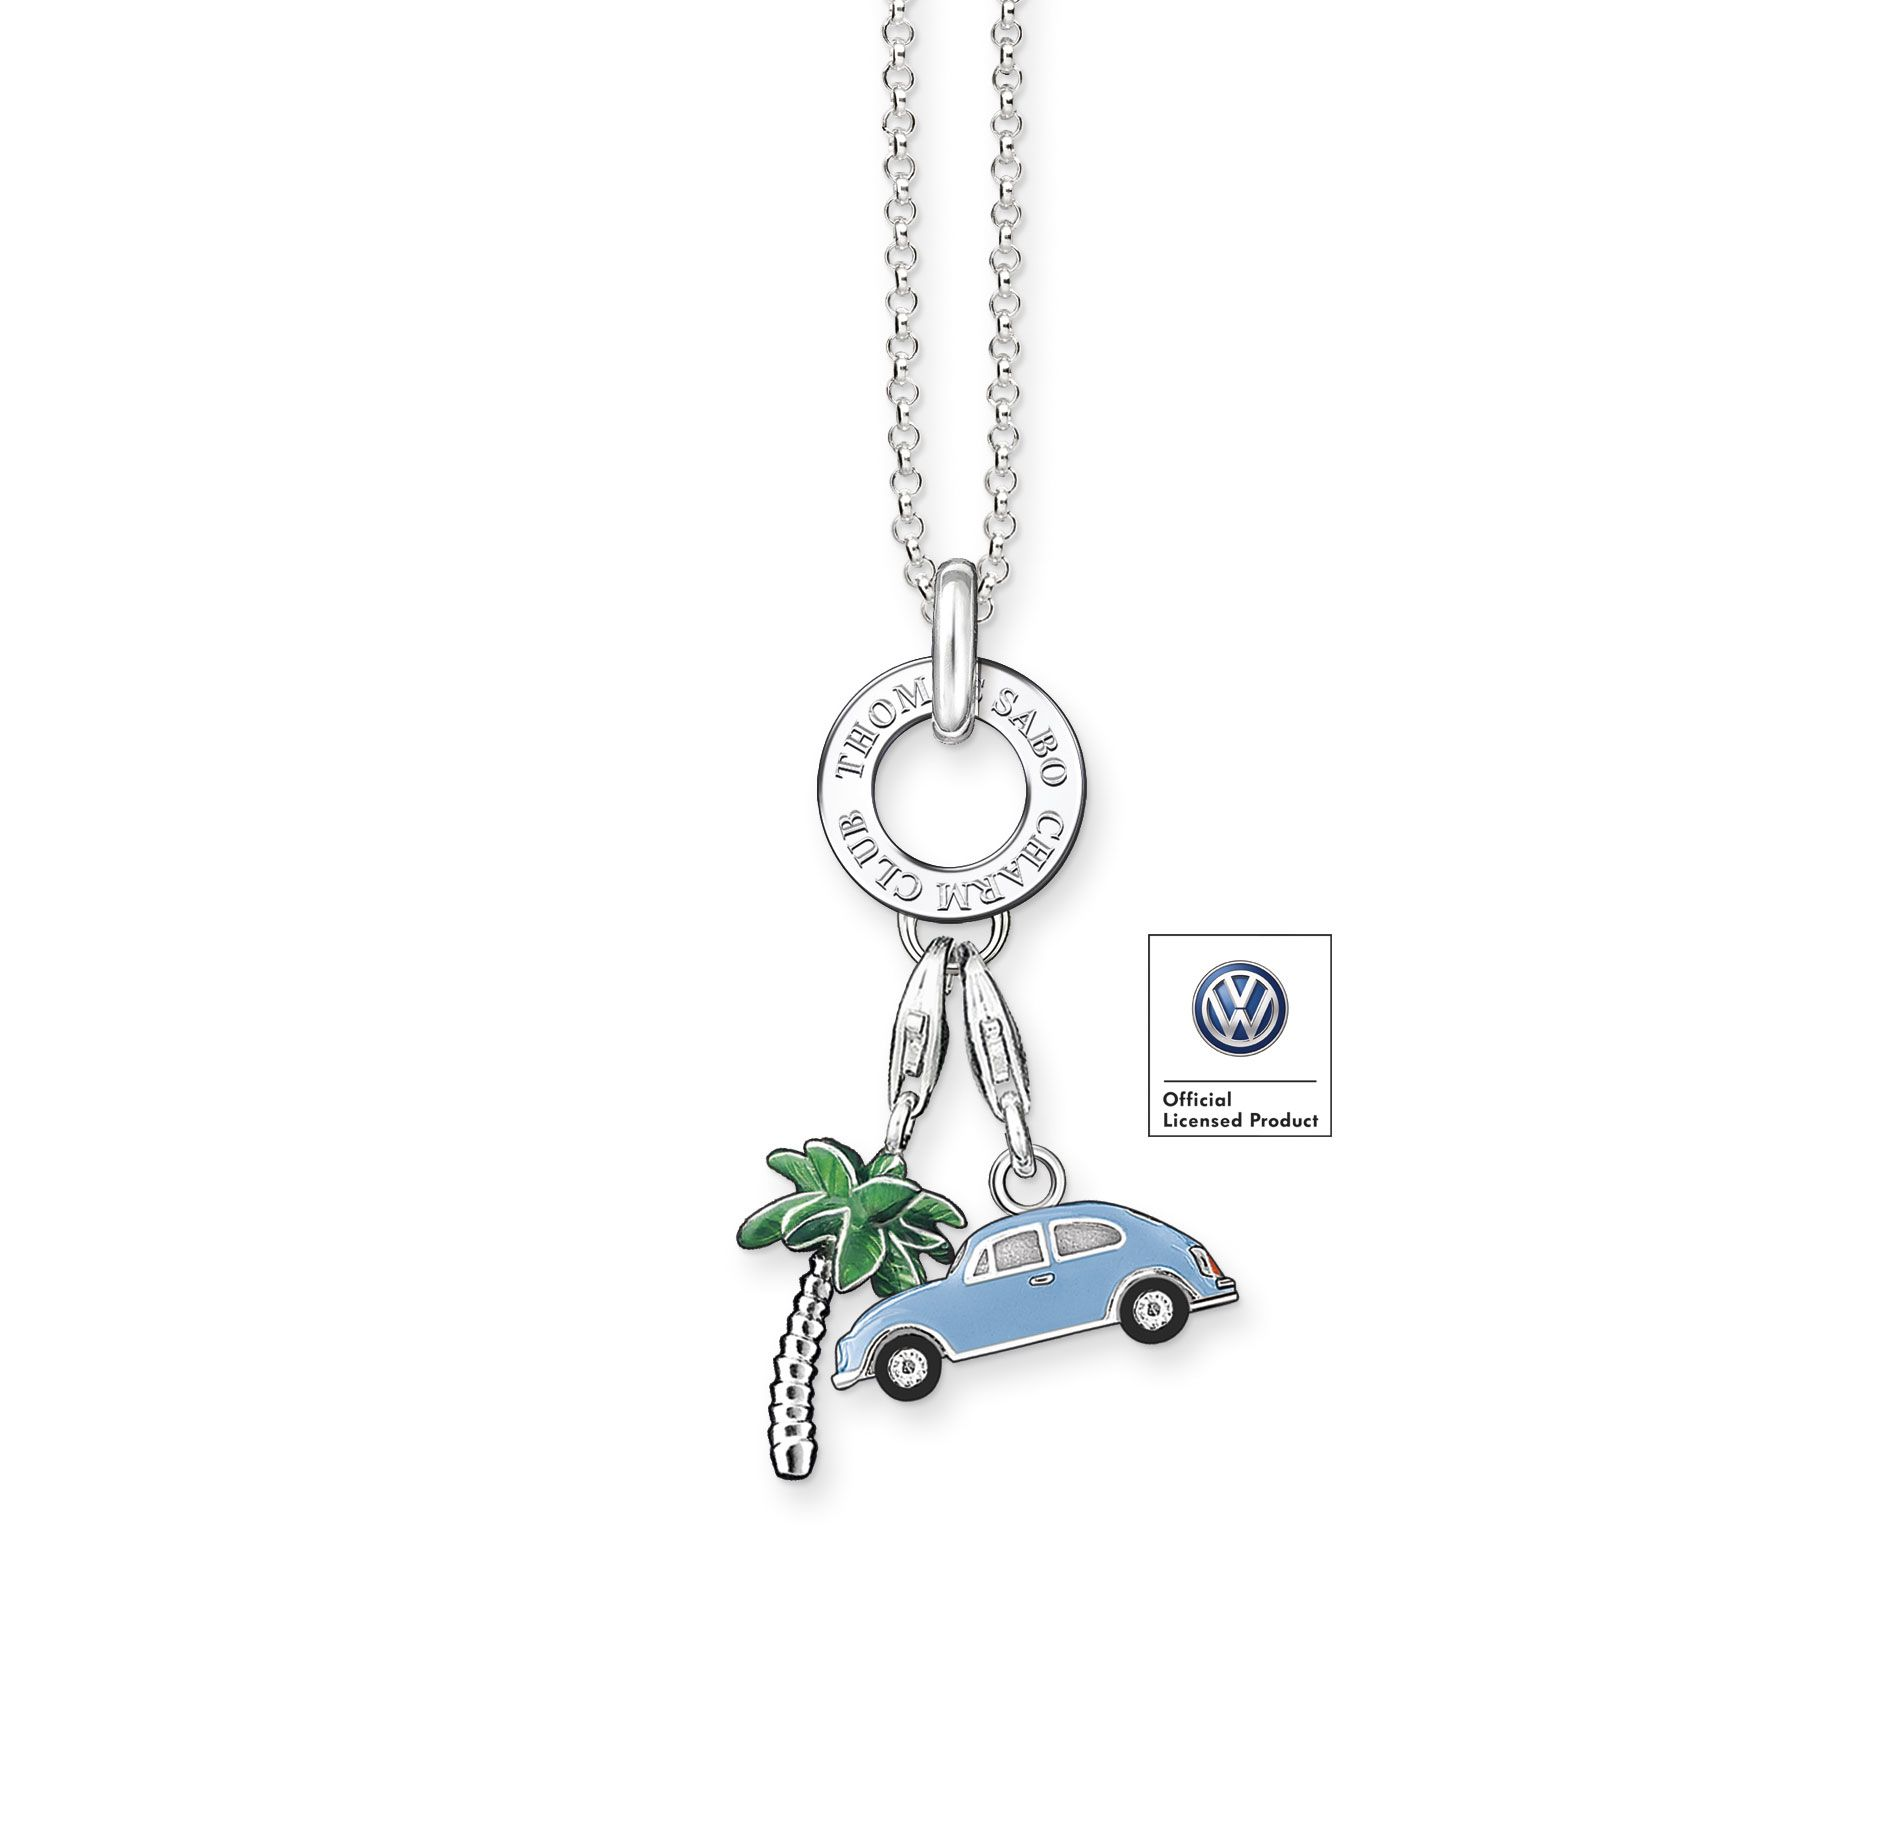 Thomas Sabo Charm Club Charms Charm Pendant